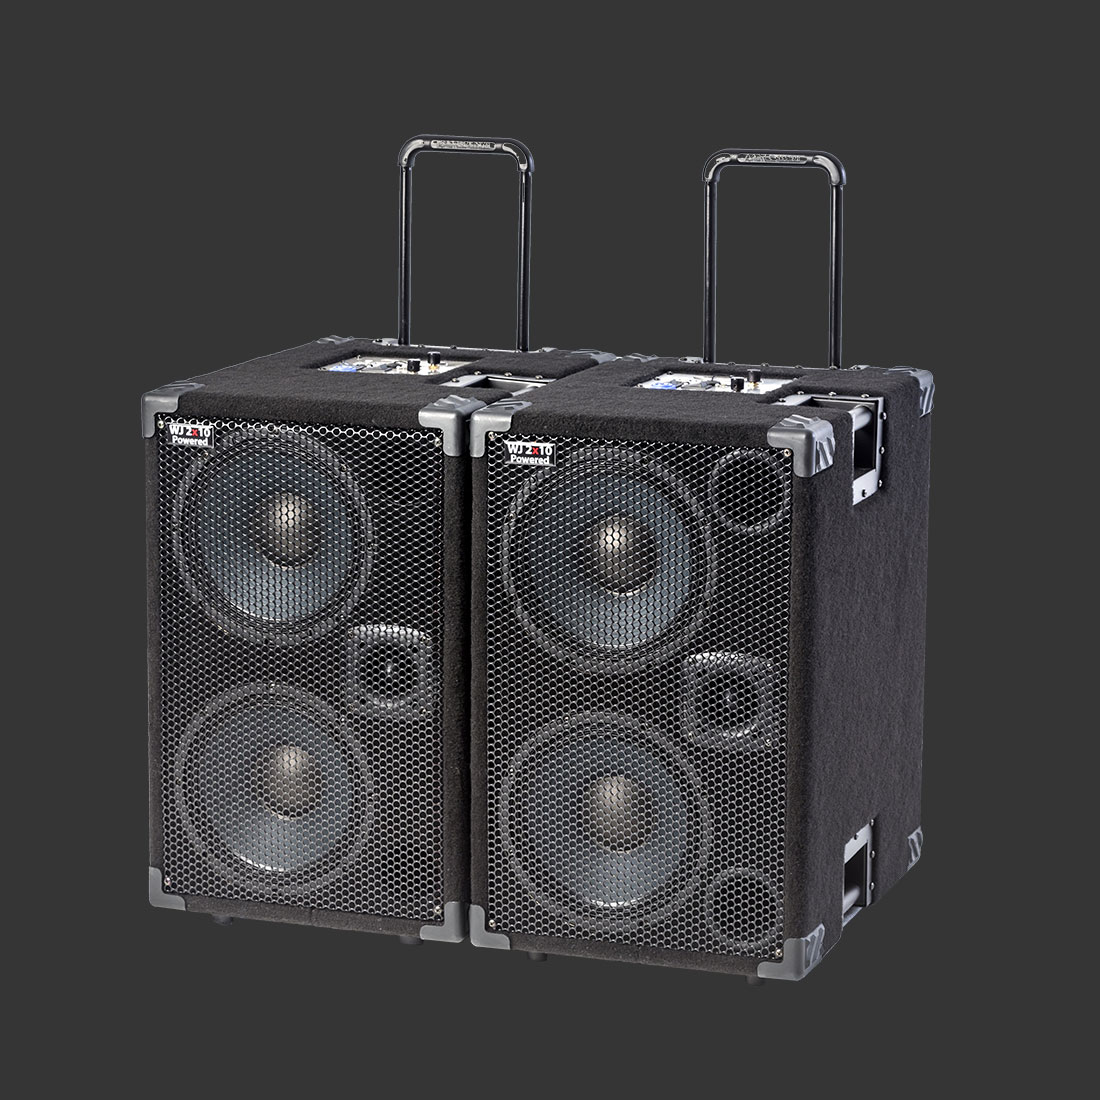 Wayne Jones Audio - Hi Powered, Hi End Bass Cabinets